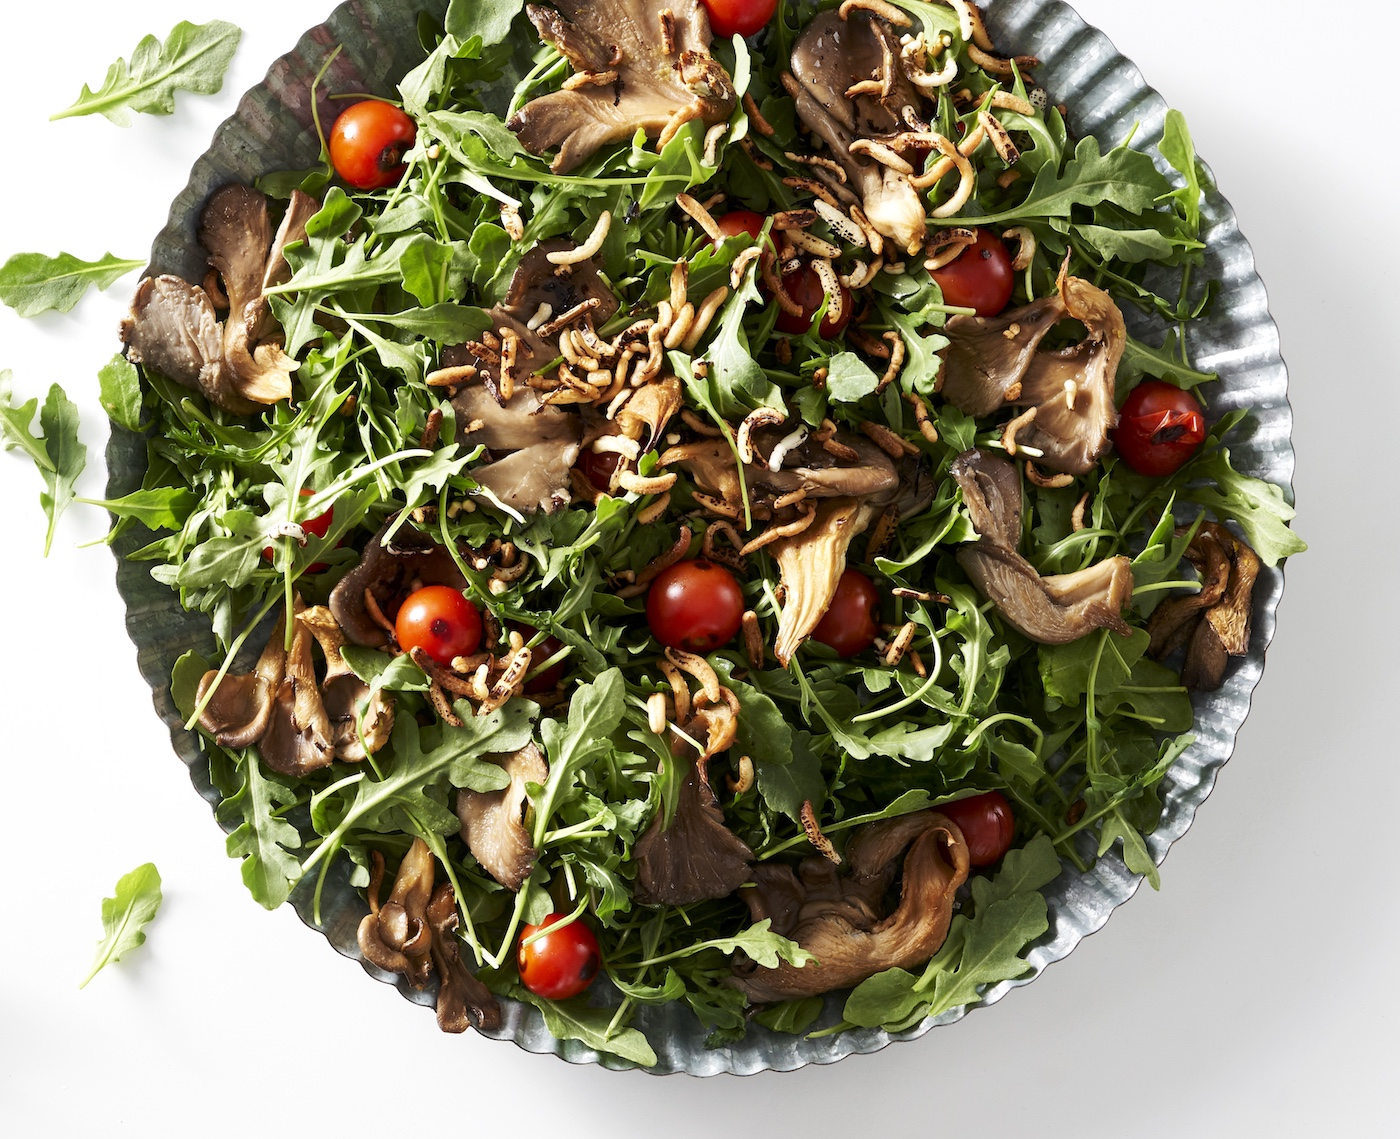 Mushroom, cherry tomato and arugula salad.